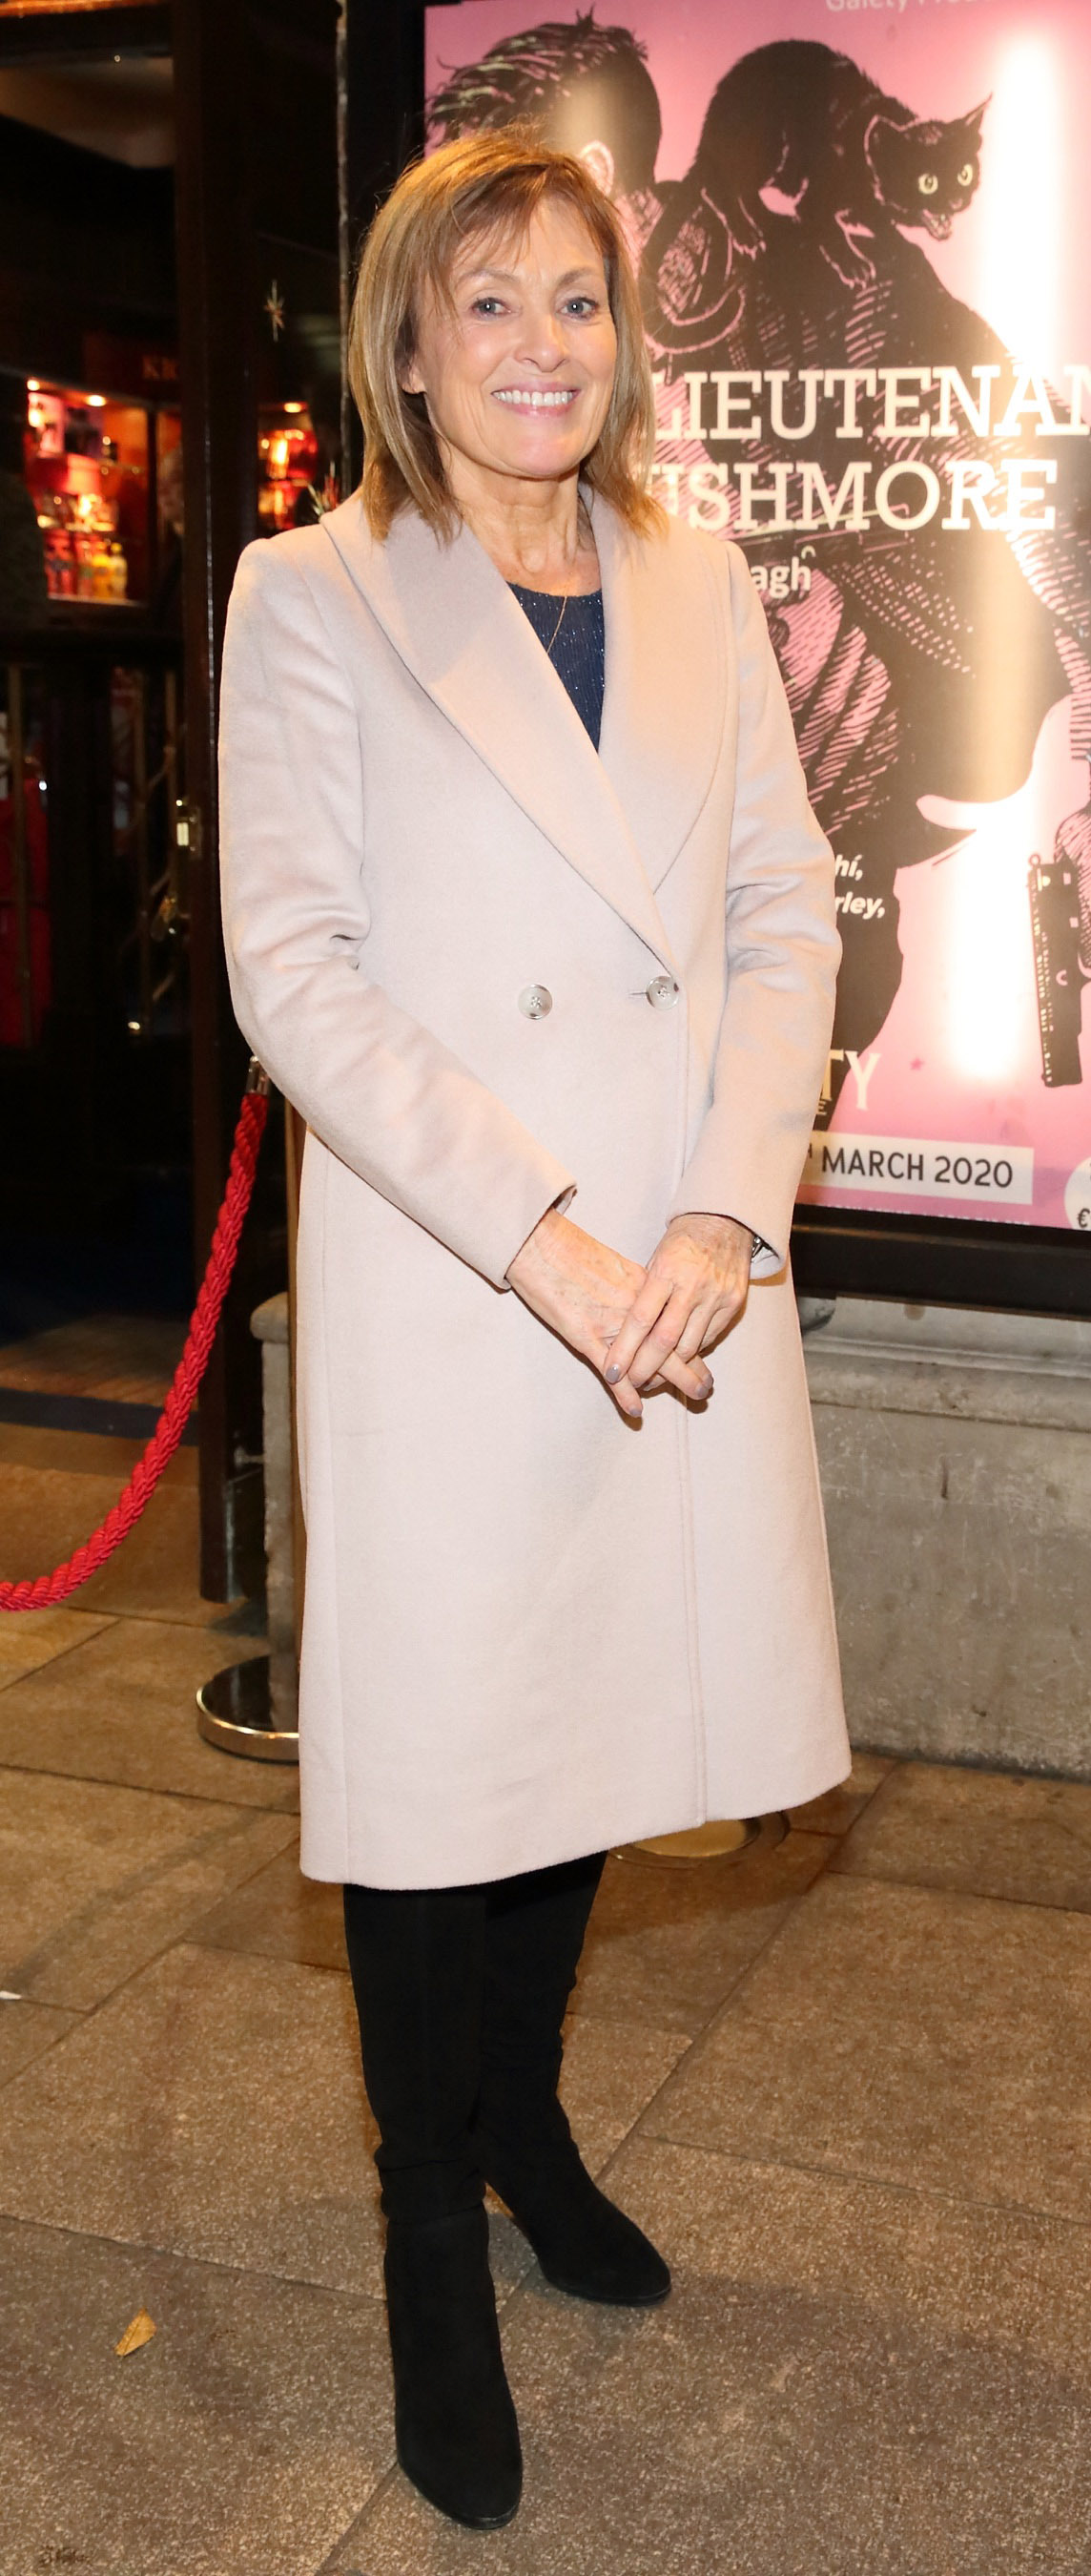 Mary Kennedy pictured at the opening of the Gaiety Theatre's major new production of Martin McDonagh's 'The Lieutenant of Inishmore', which will run at the Gaiety Theatre until 14th March.